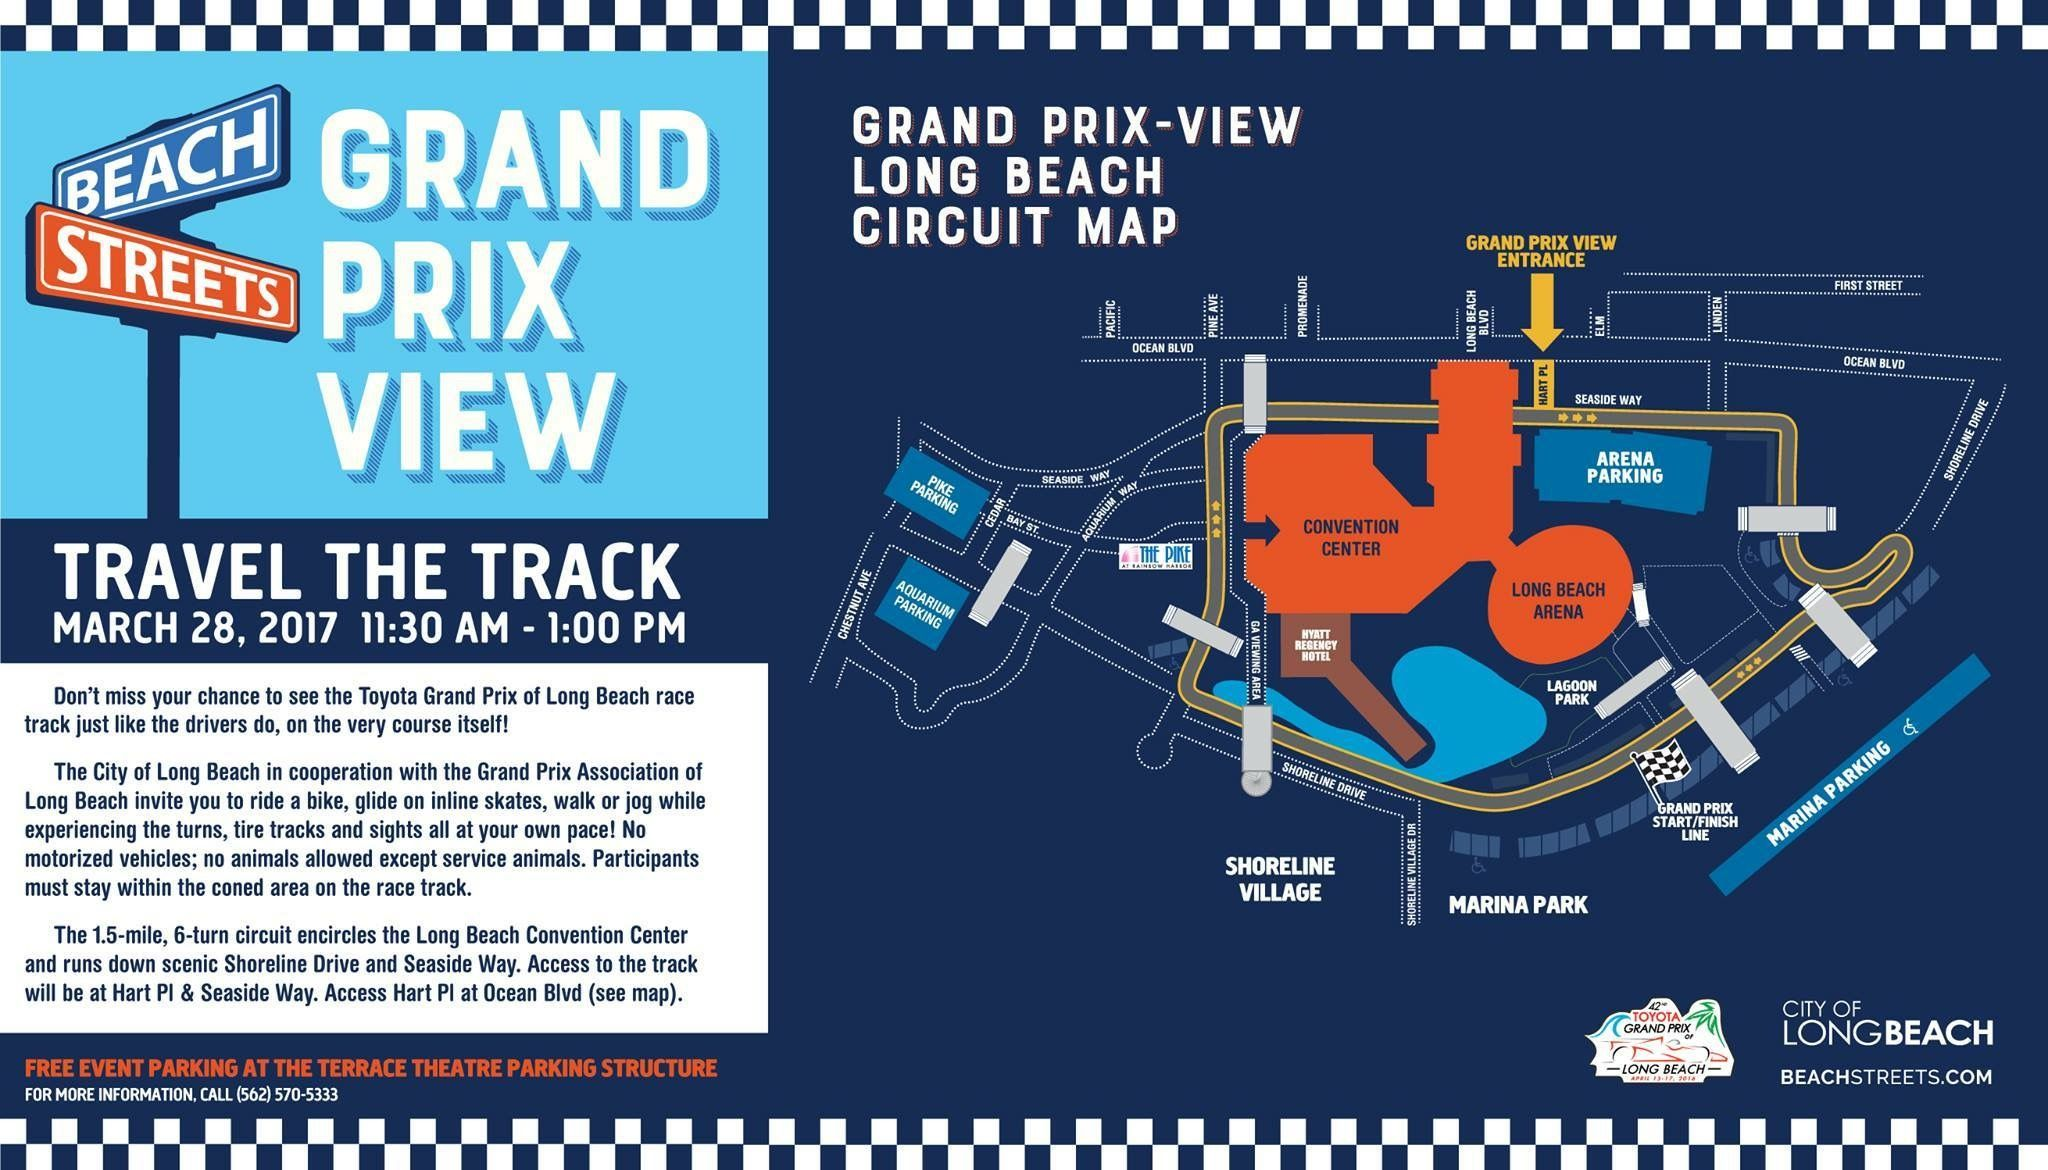 Long Beach Grand Prix Events - I want to see you out there! Join us during your lunch break for a stroll around the same track where the world's best Indy Car drivers will rocket by at over 180 mph. Beach Streets' Grand Prix View sponsored by the City of Long Beach is back! WHEN: Tuesday, March 28 TIME: 11:30 am to 1:00 pm WHERE: Toyota Grand Prix of Long Beach Track More info here >>> http://bit.ly/PrixView #LongBeachGrandPrix #LongBeachEvents #LifestylesofLongBeach #GrandPrixMap…